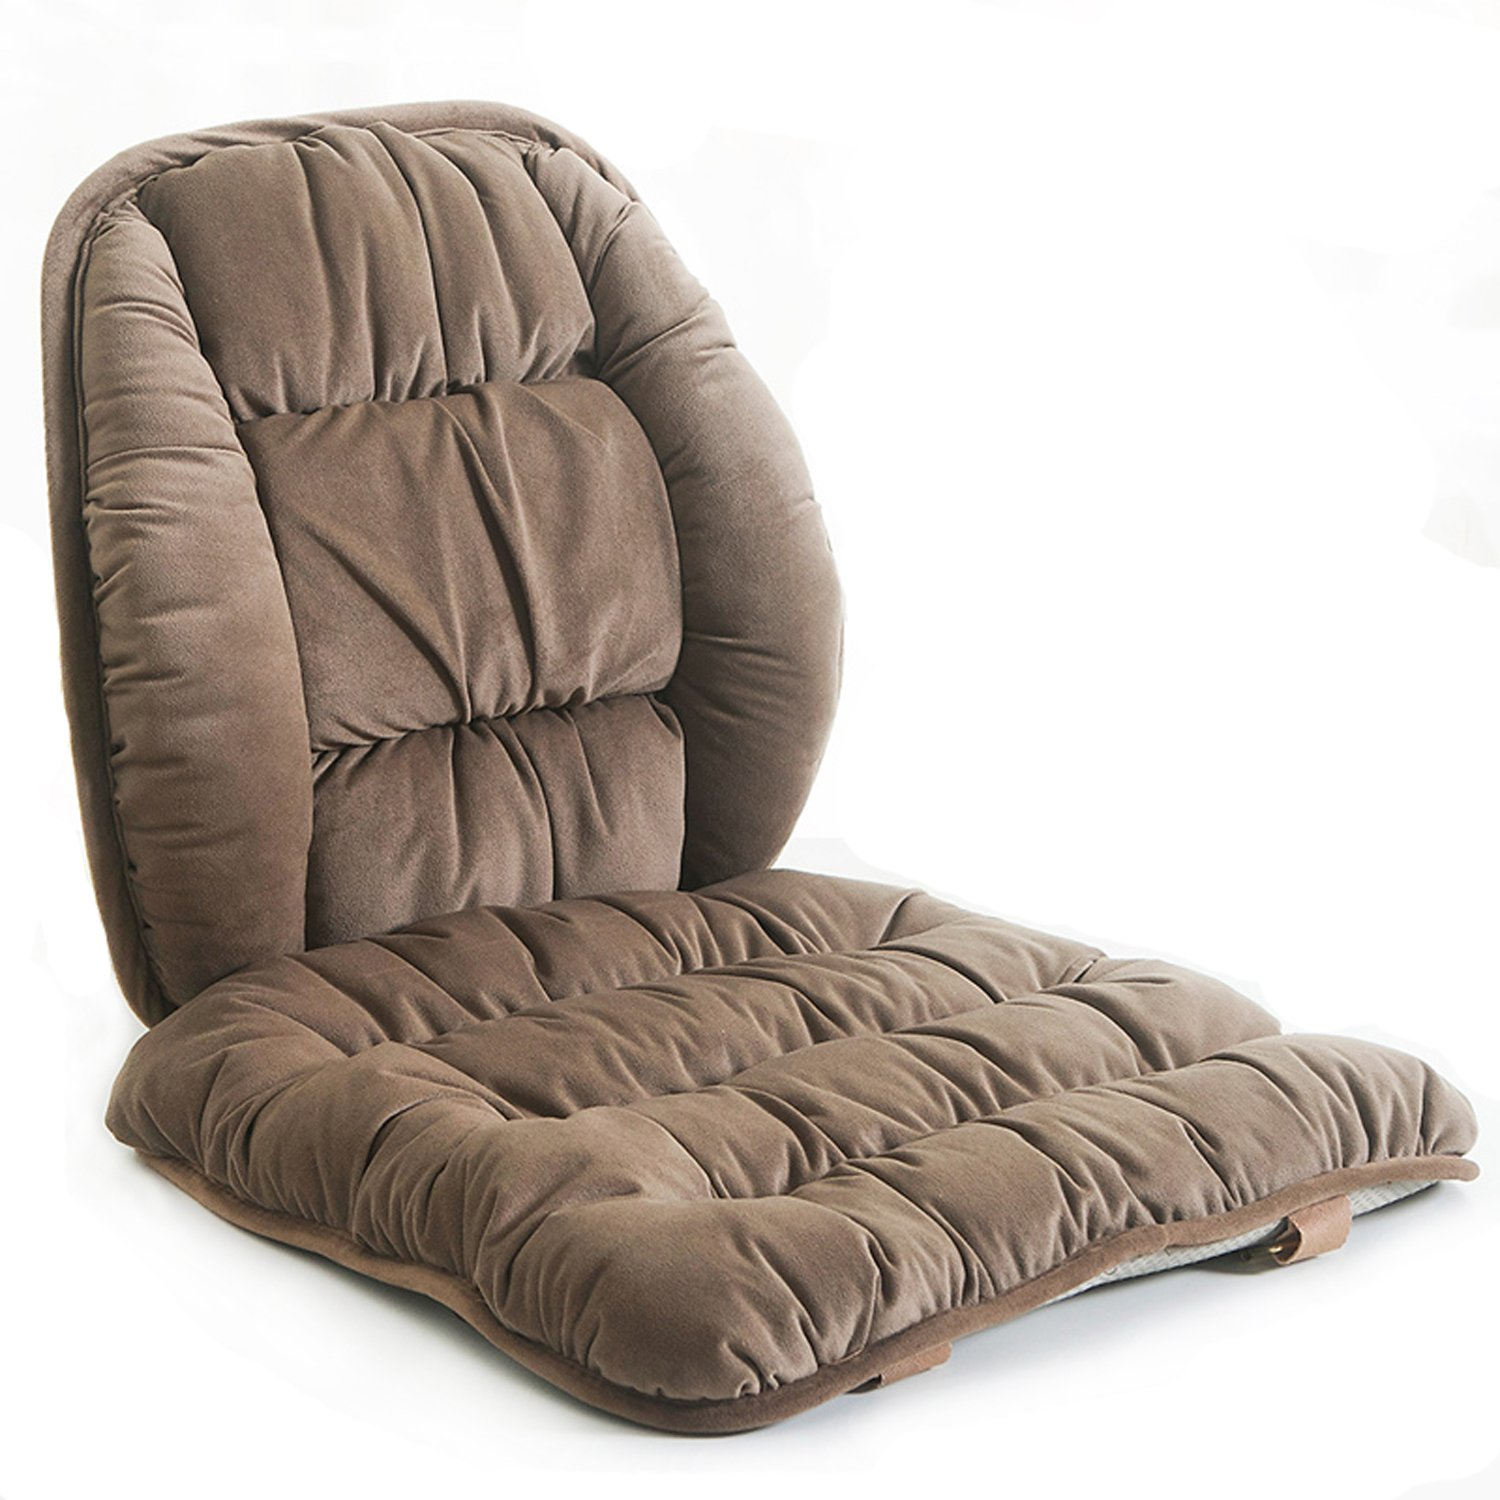 ALIBO Comfy Lumbar Back Support and Nonslip Chair Seat Pads Cushion Pain Relief Back Rest Lumbar Cushion Pillow for Office,Dinning Desk Chair,Car Seats-Coffee